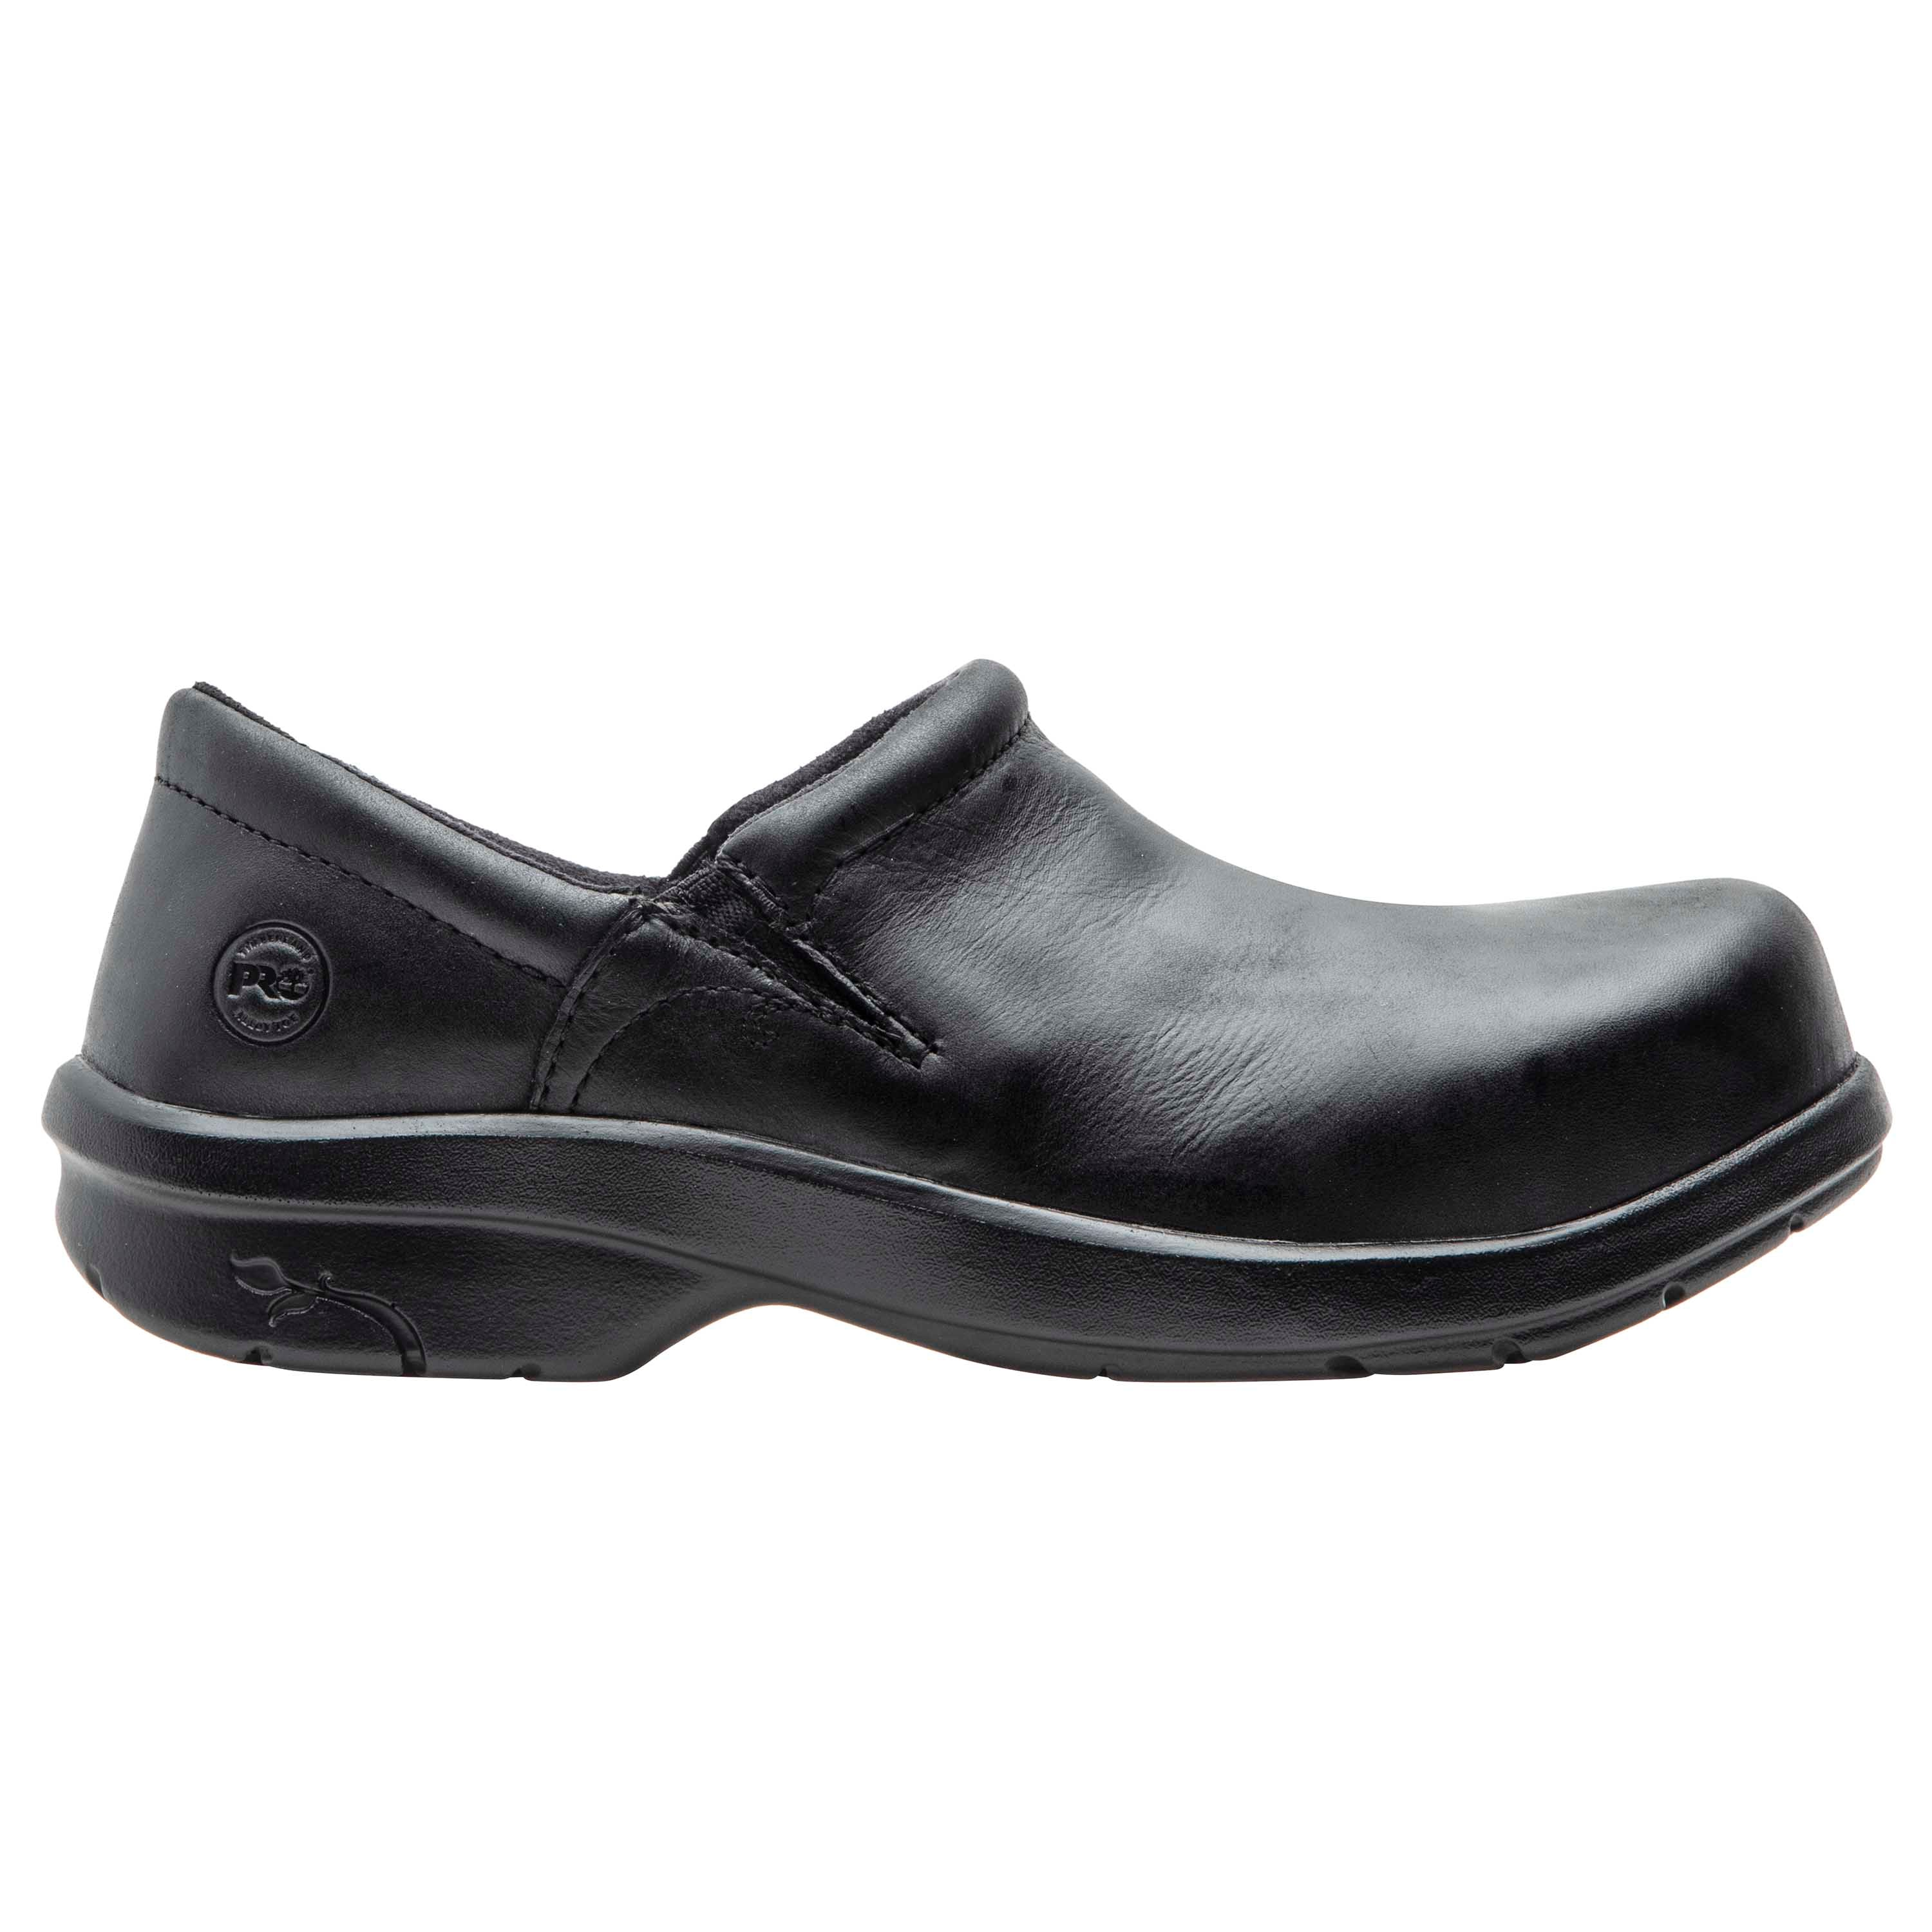 'Timberland Pro' Women's Newbury ESD Slip On Alloy Toe - Black